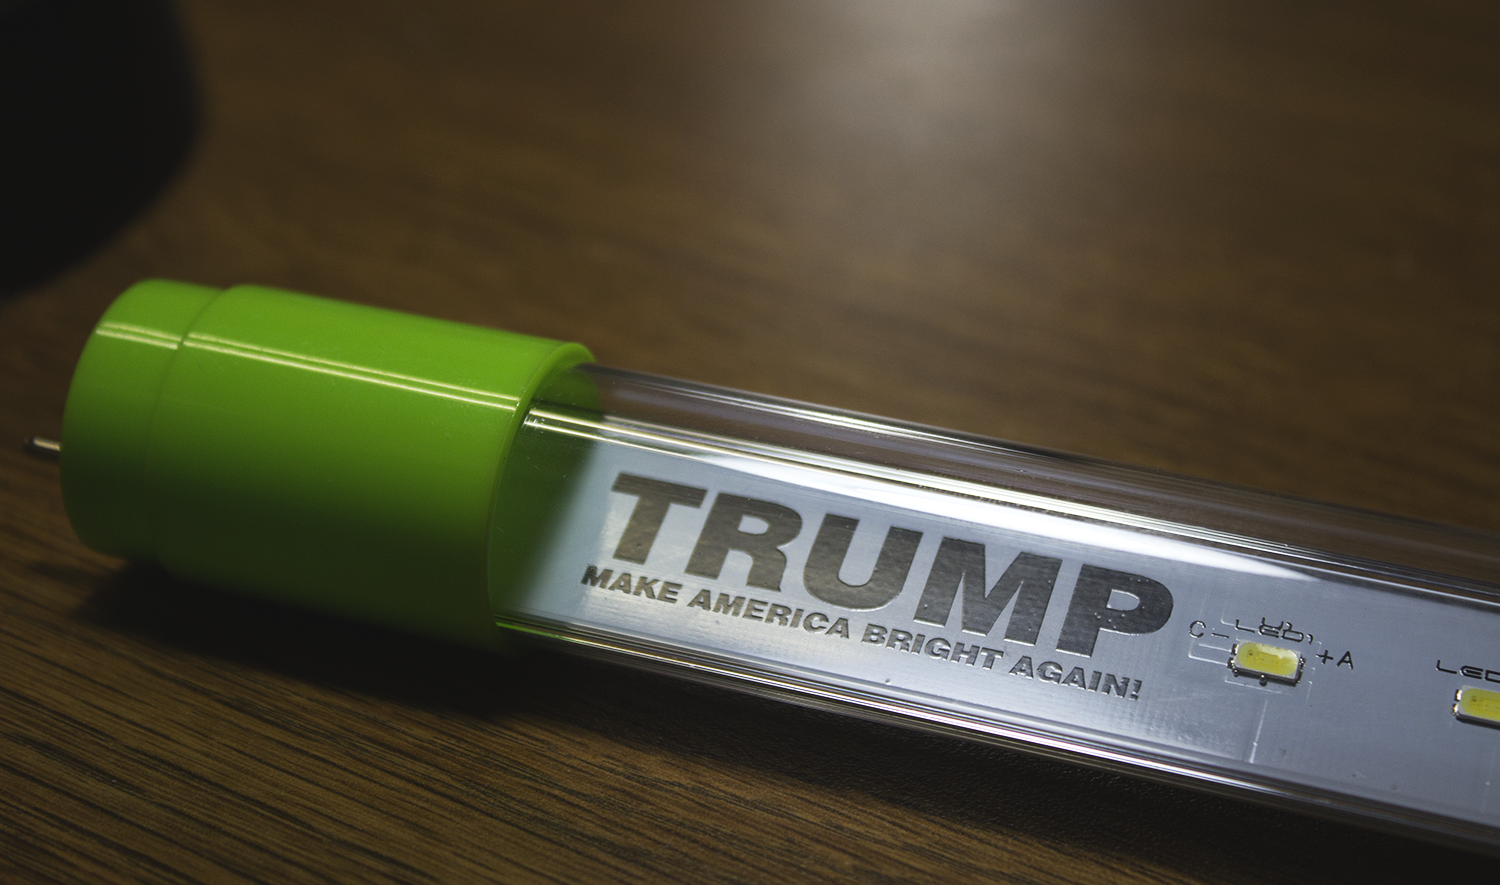 US Lighting Groupu0027s Trump-inspired LED Bulb & US Lighting Group to Appear at Next Weeku0027s RNC in Cleveland | Newswire